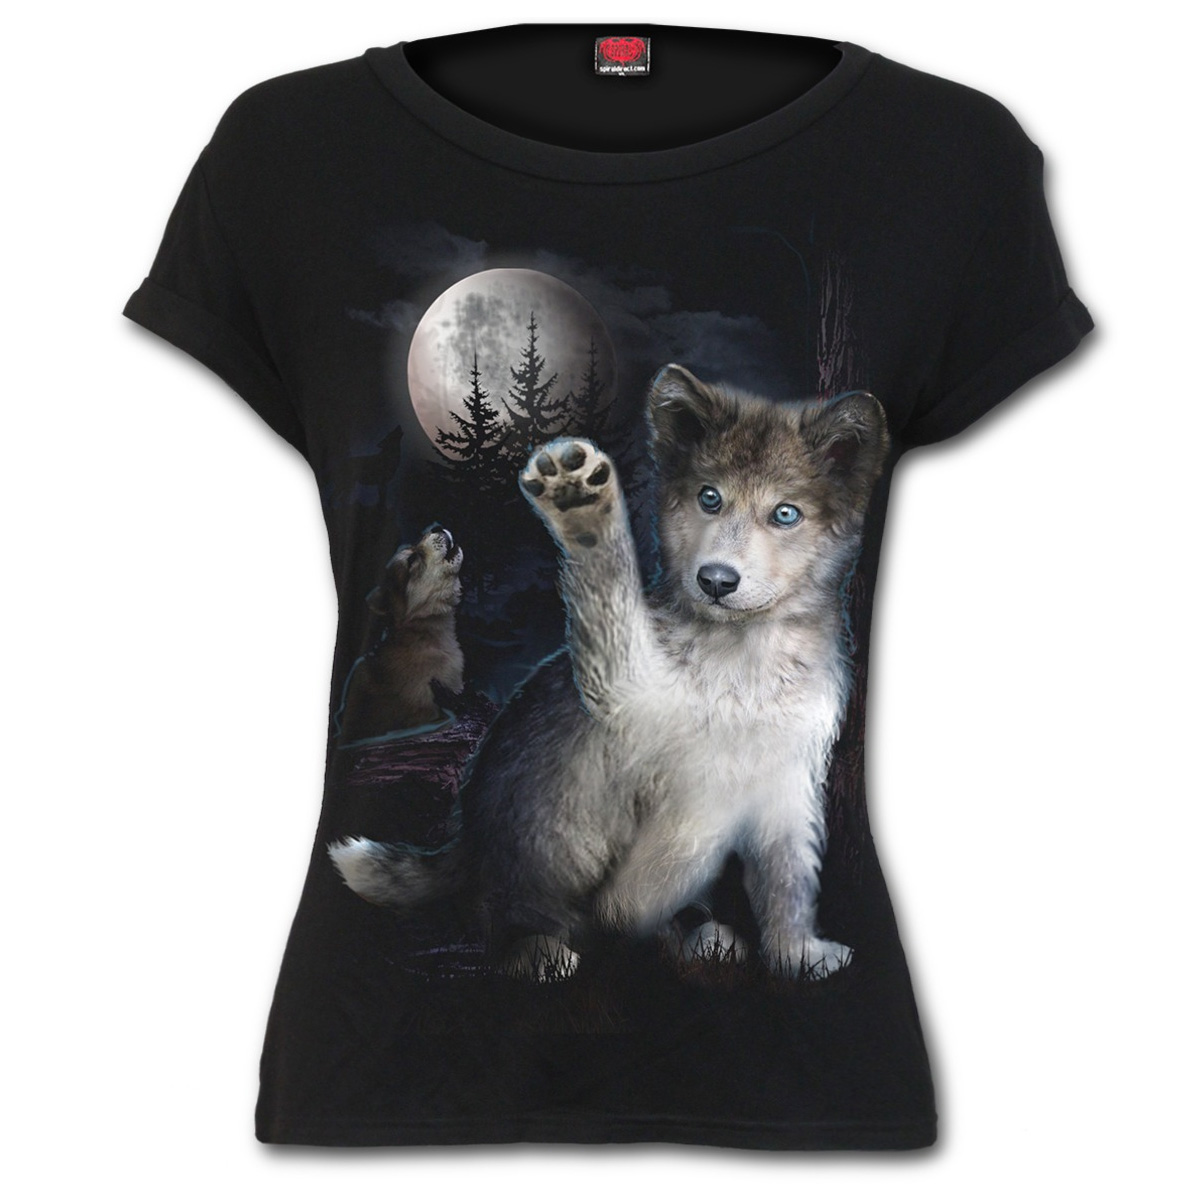 SPIRAL-DIRECT-Ladies-Black-Goth-Moon-WOLF-PUPPY-T-Shirt-Top-All-Sizes thumbnail 5